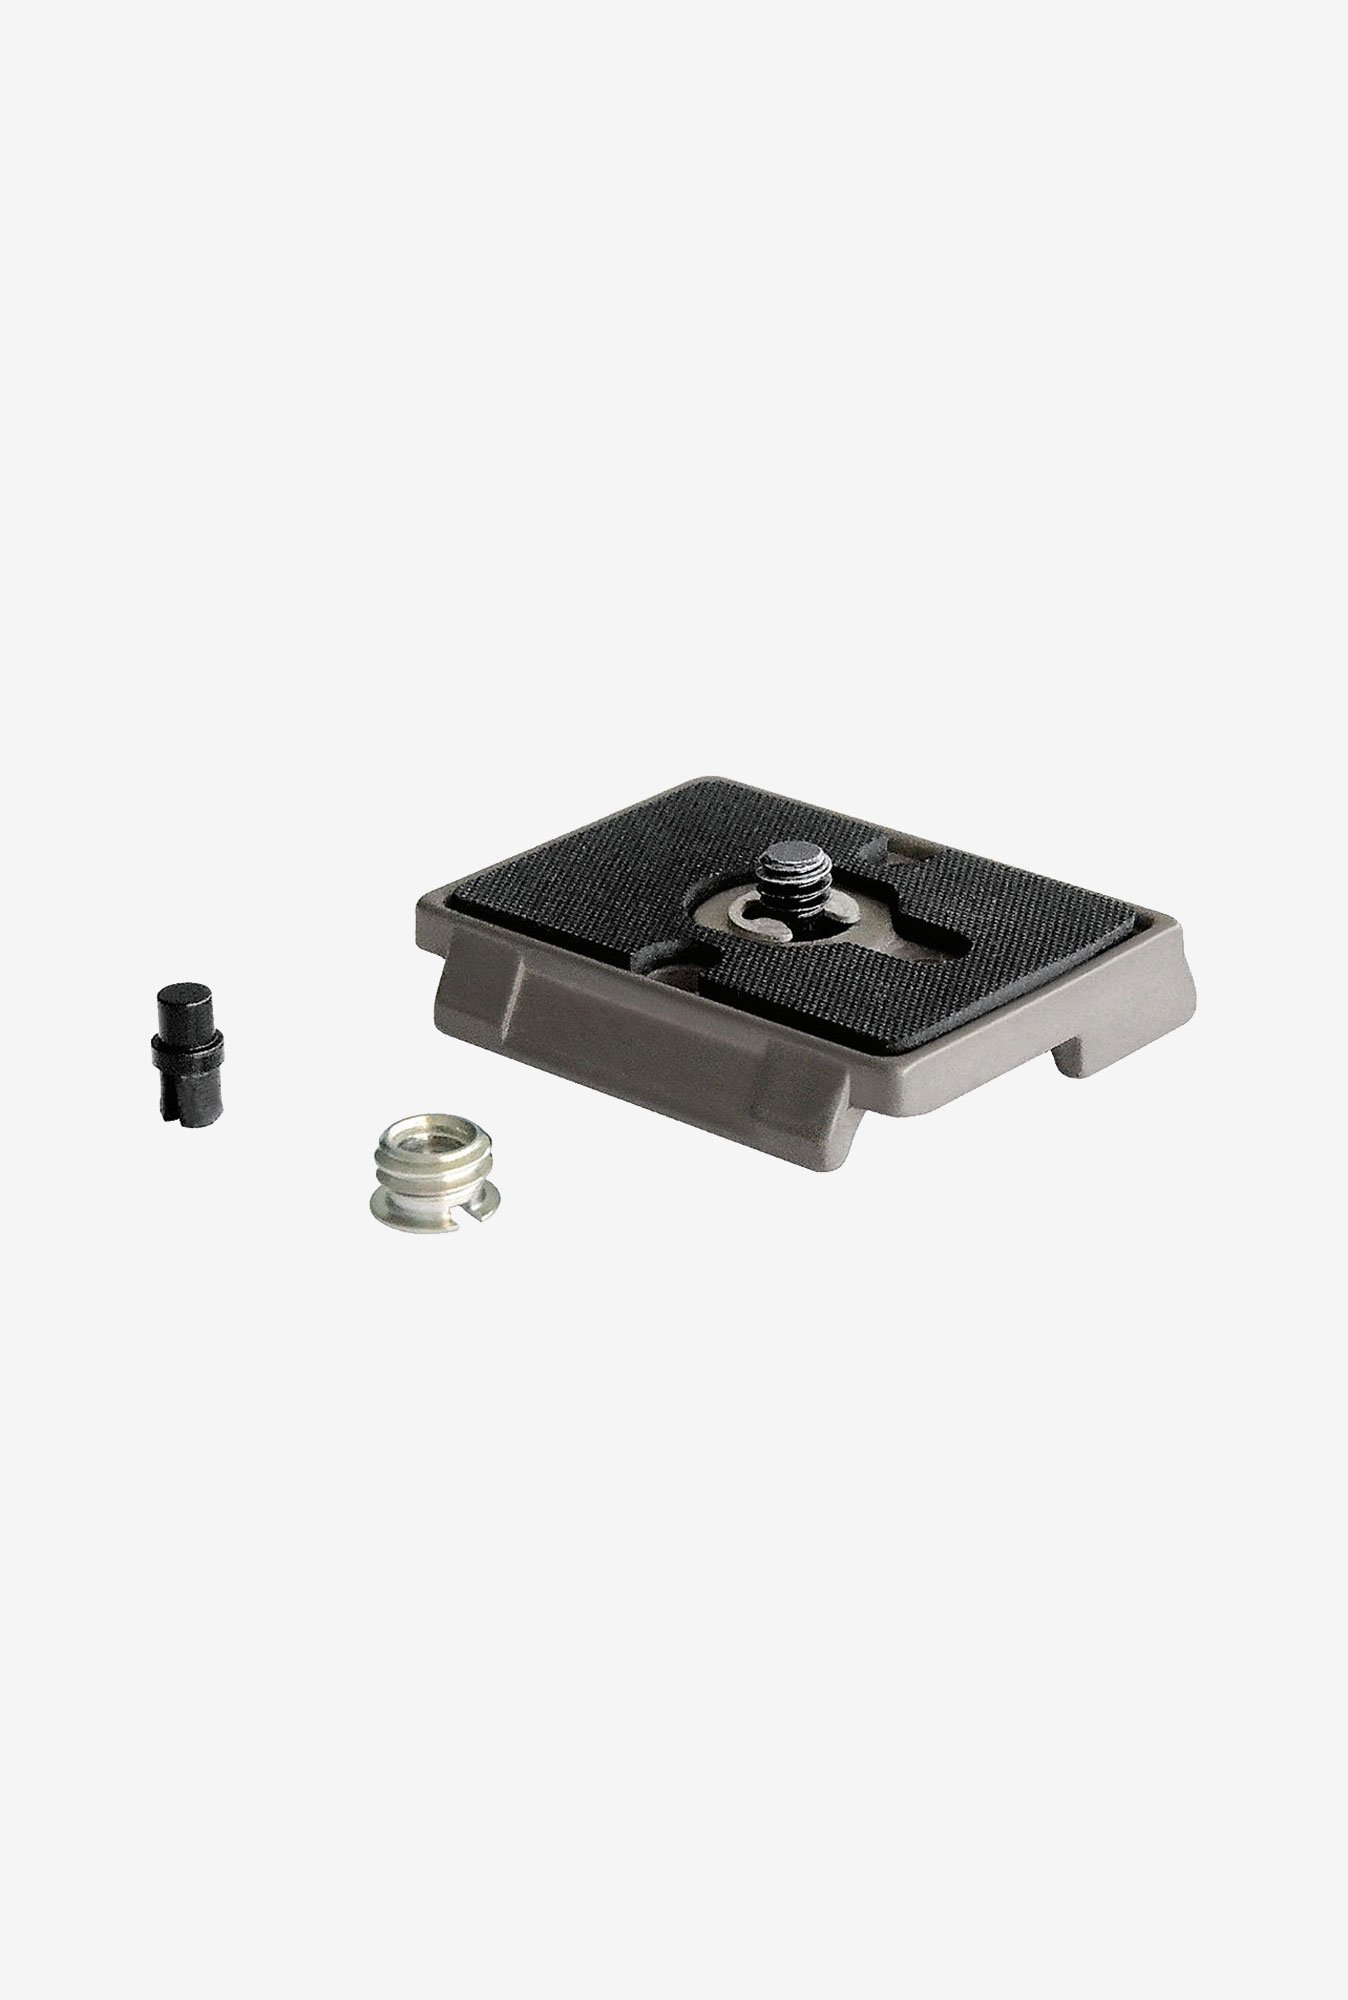 "Manfrotto 200PL Plate with Screw & 3/8"" Bushing Adapter"